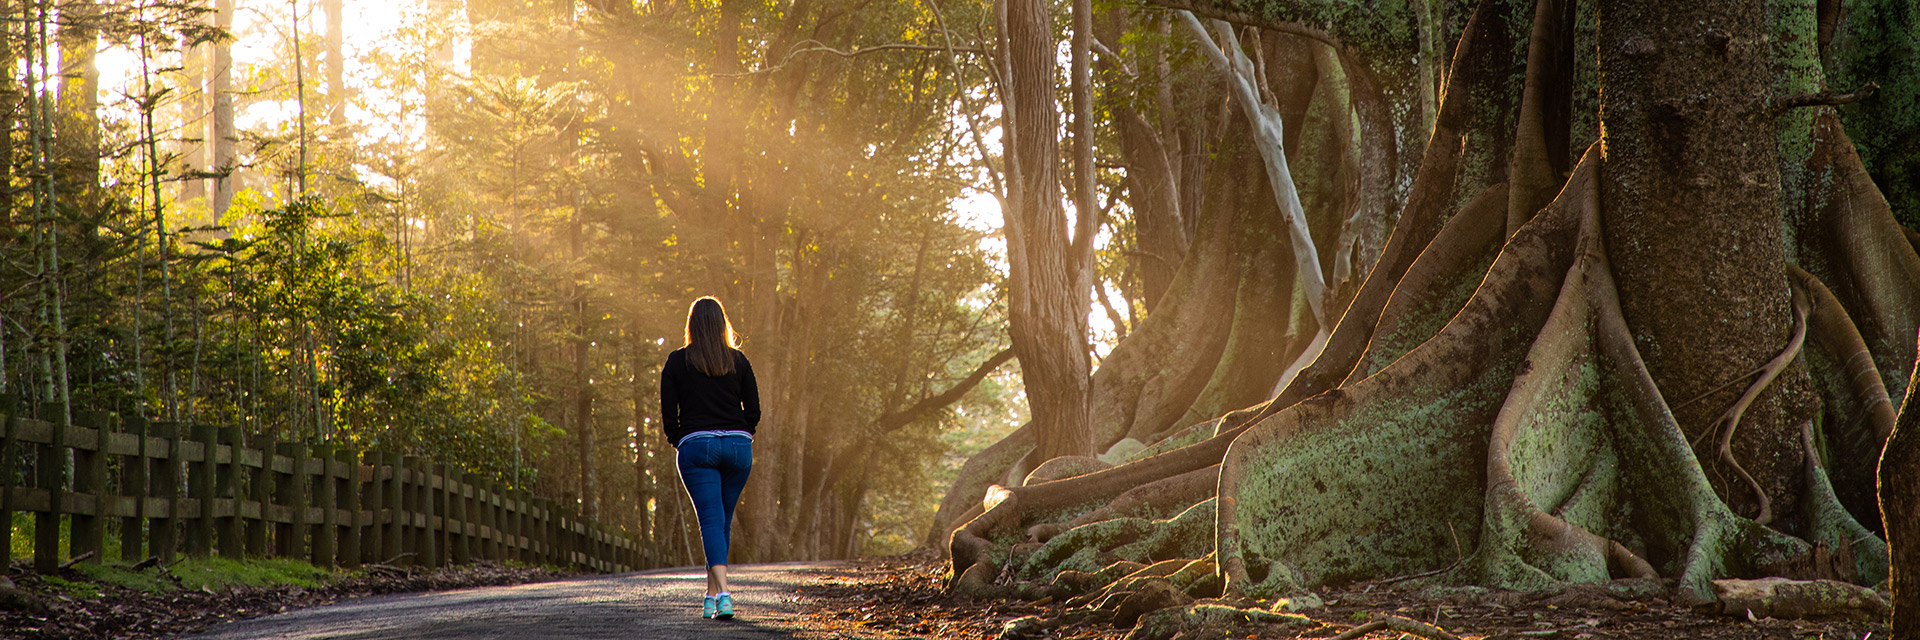 Female walks along paved path next to the large, lichen-covered roots of Moreton Bay fig trees.